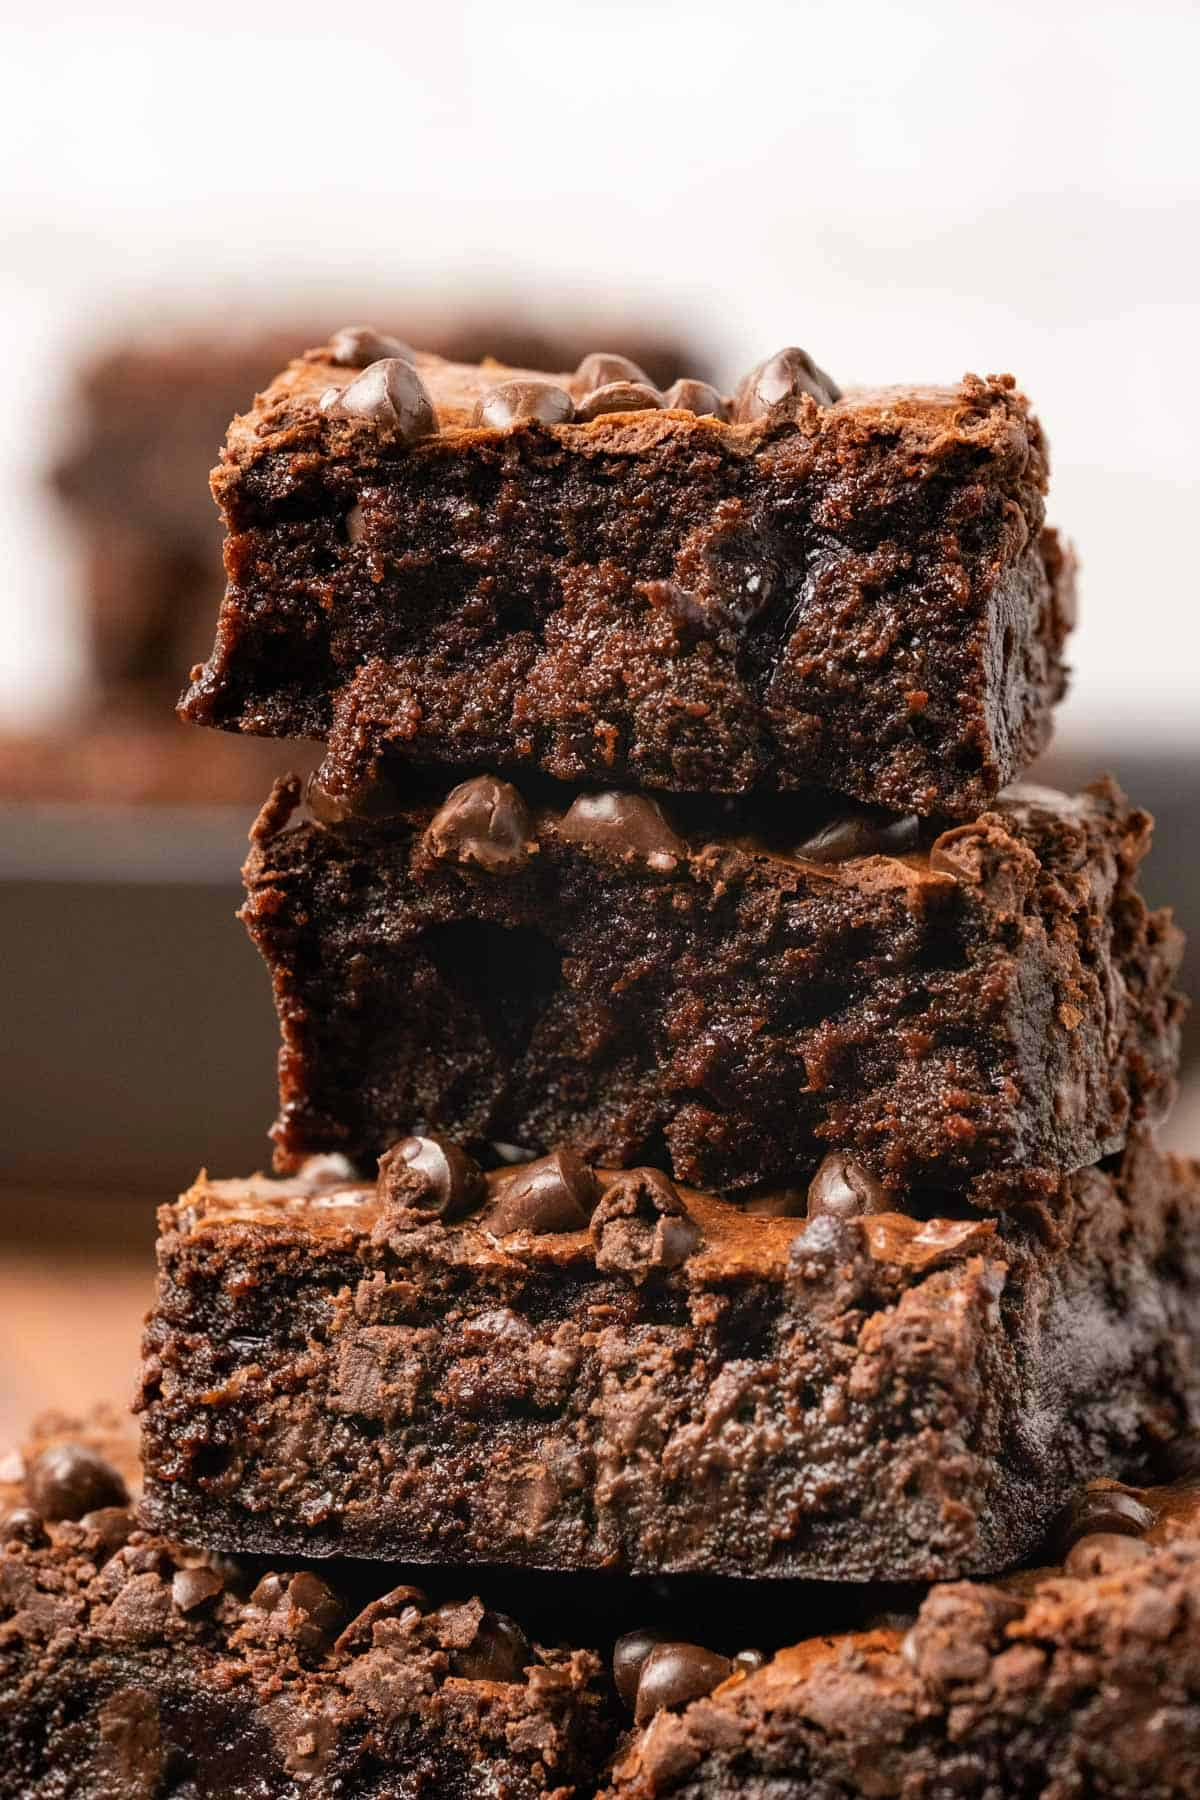 A stack of brownies on a plate with the top one broken in half.